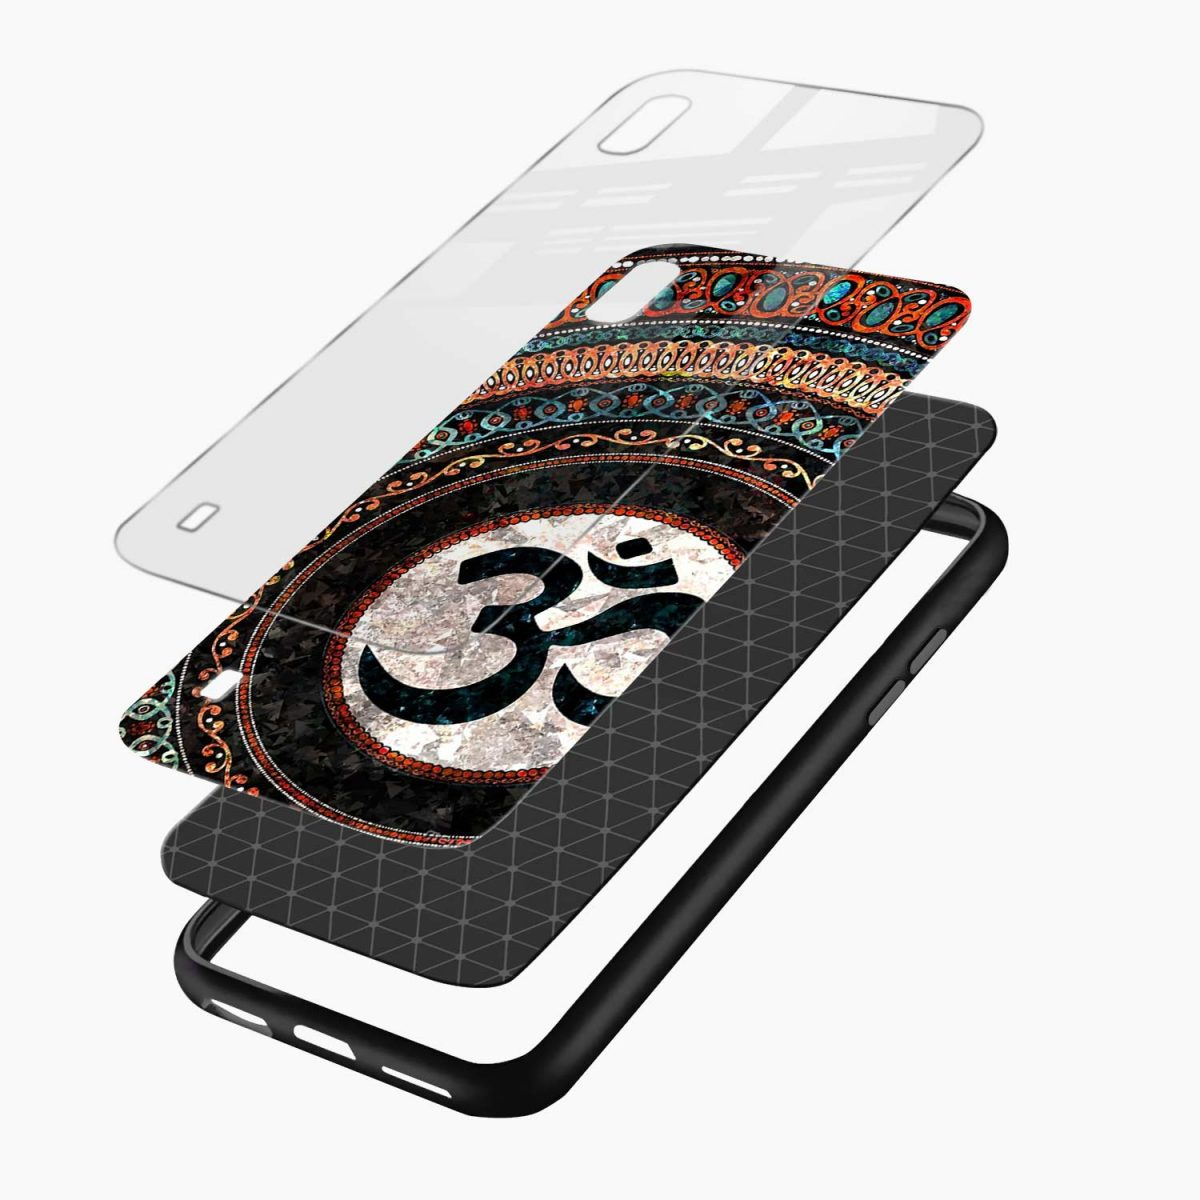 om glass layers view samsung galaxy a10 back cover